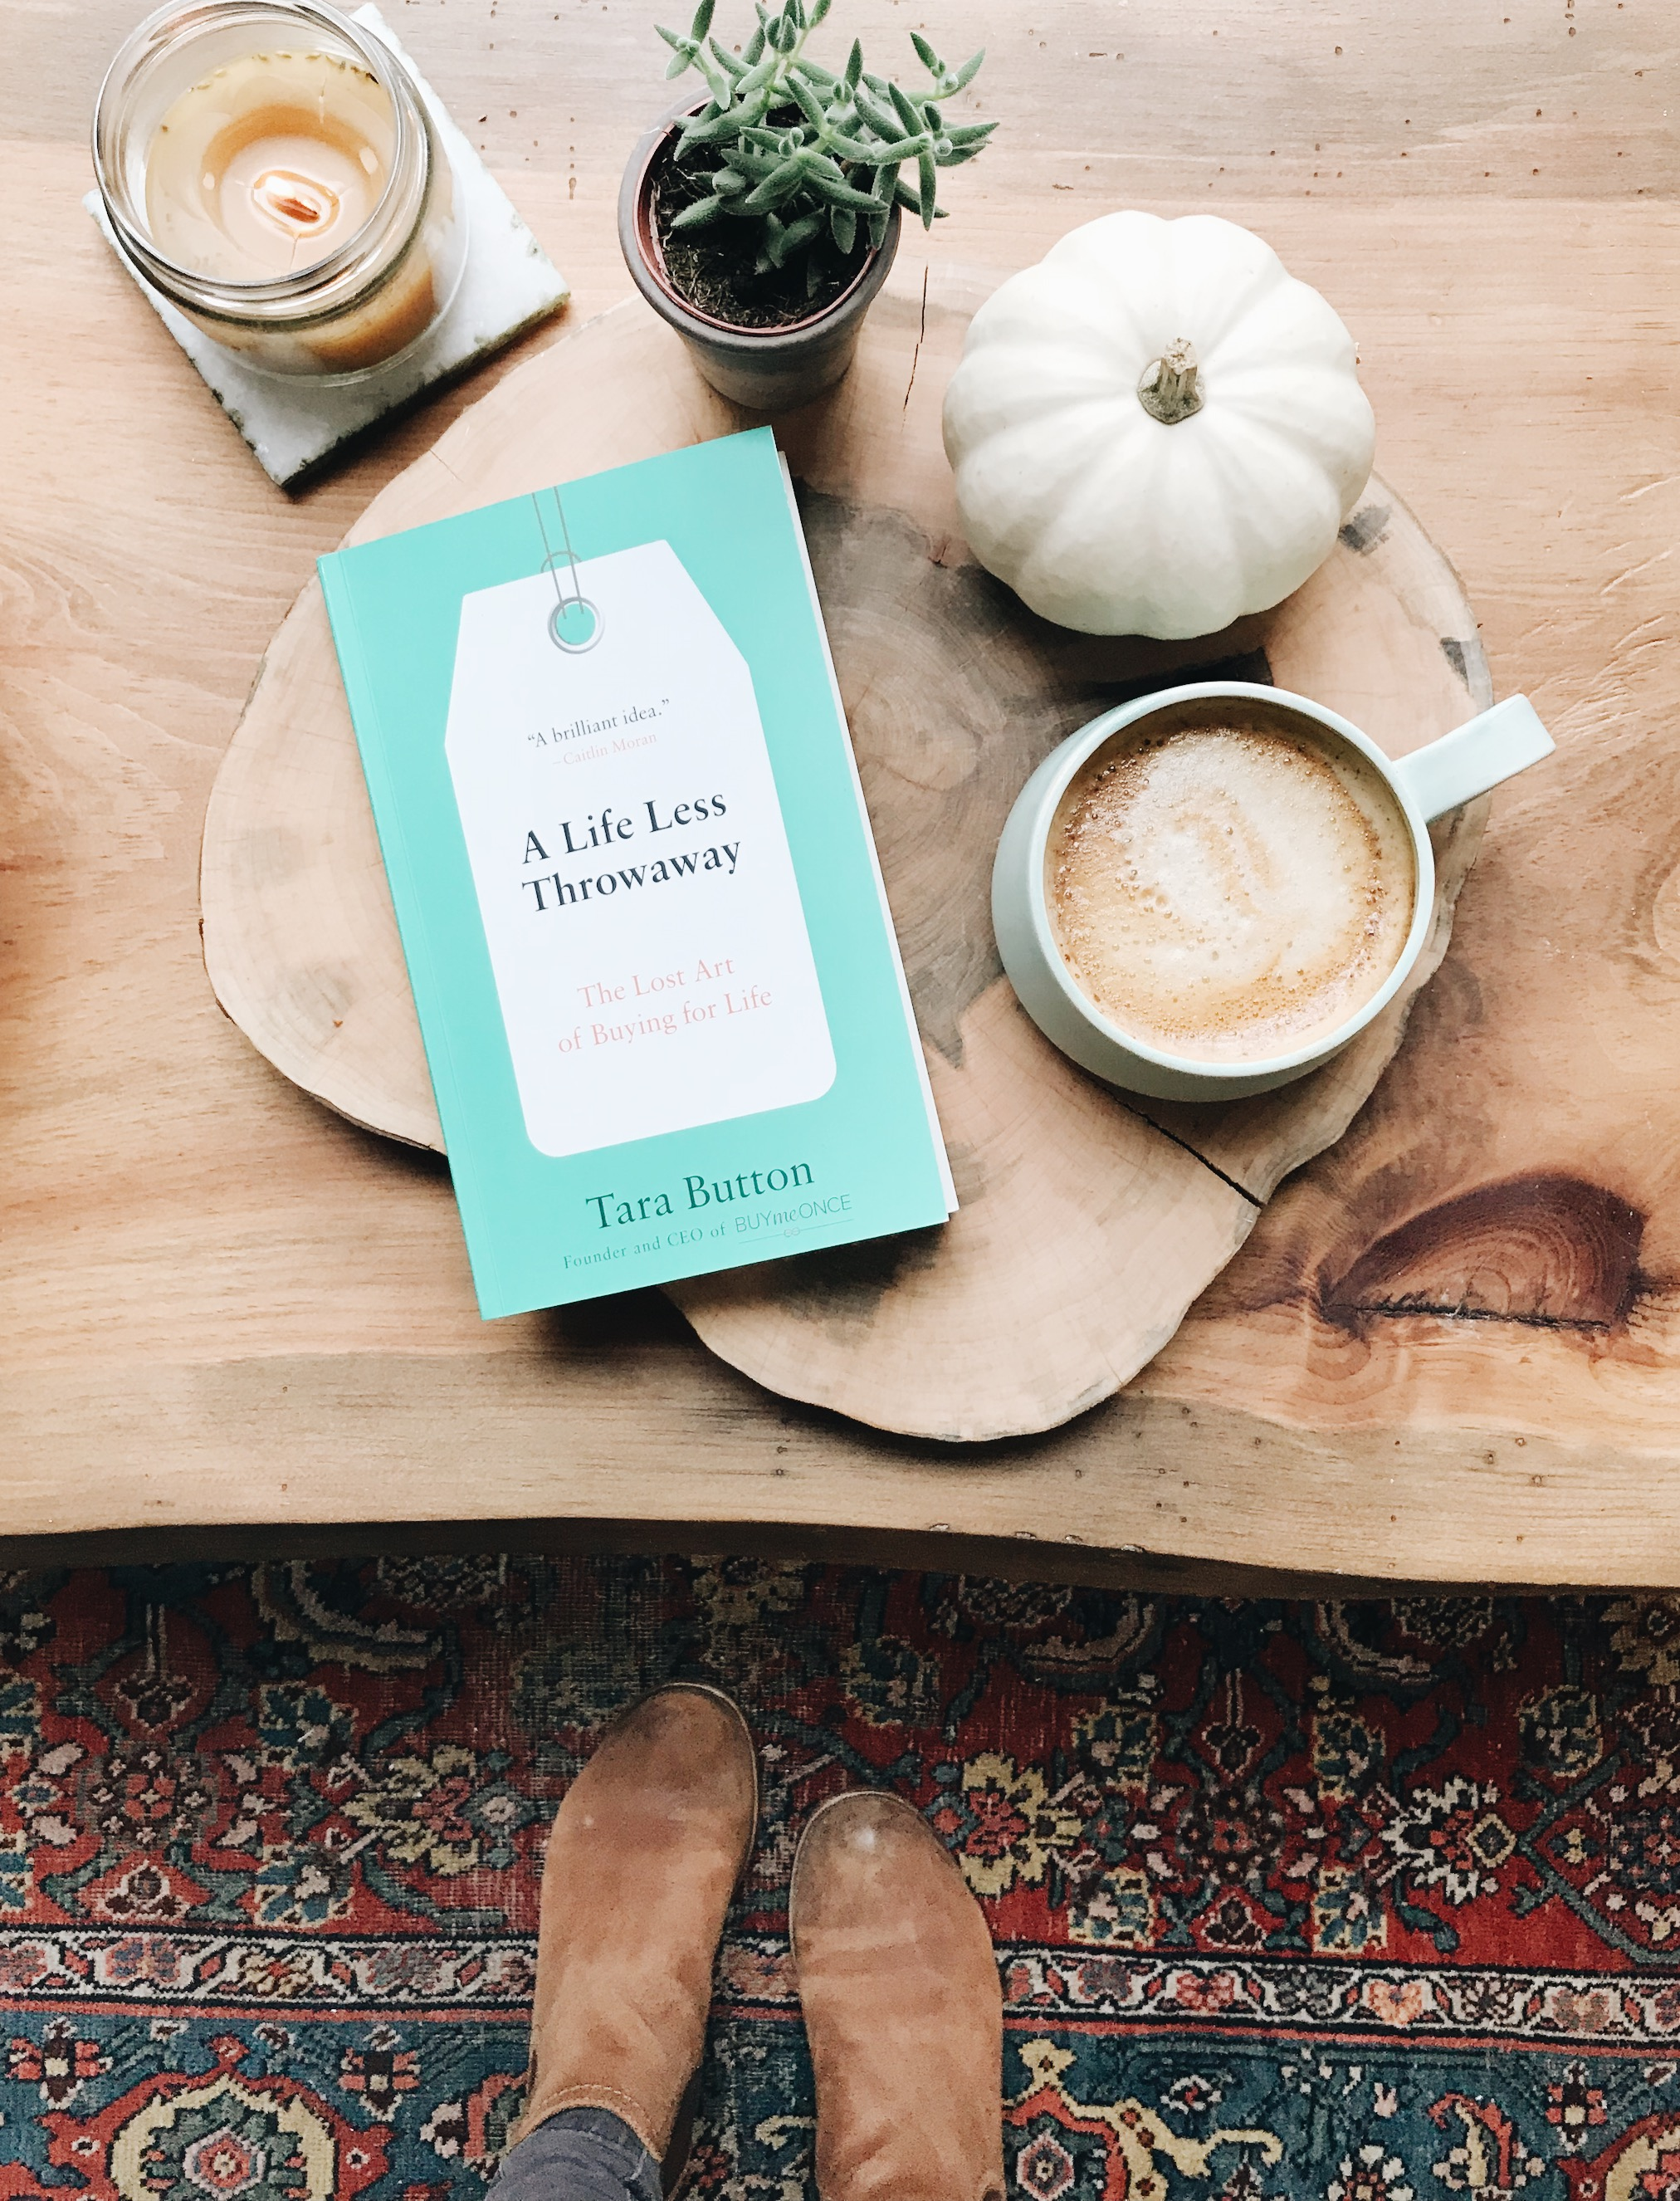 5 Steps To Creating A Life Less Throwaway - The Well Essentials